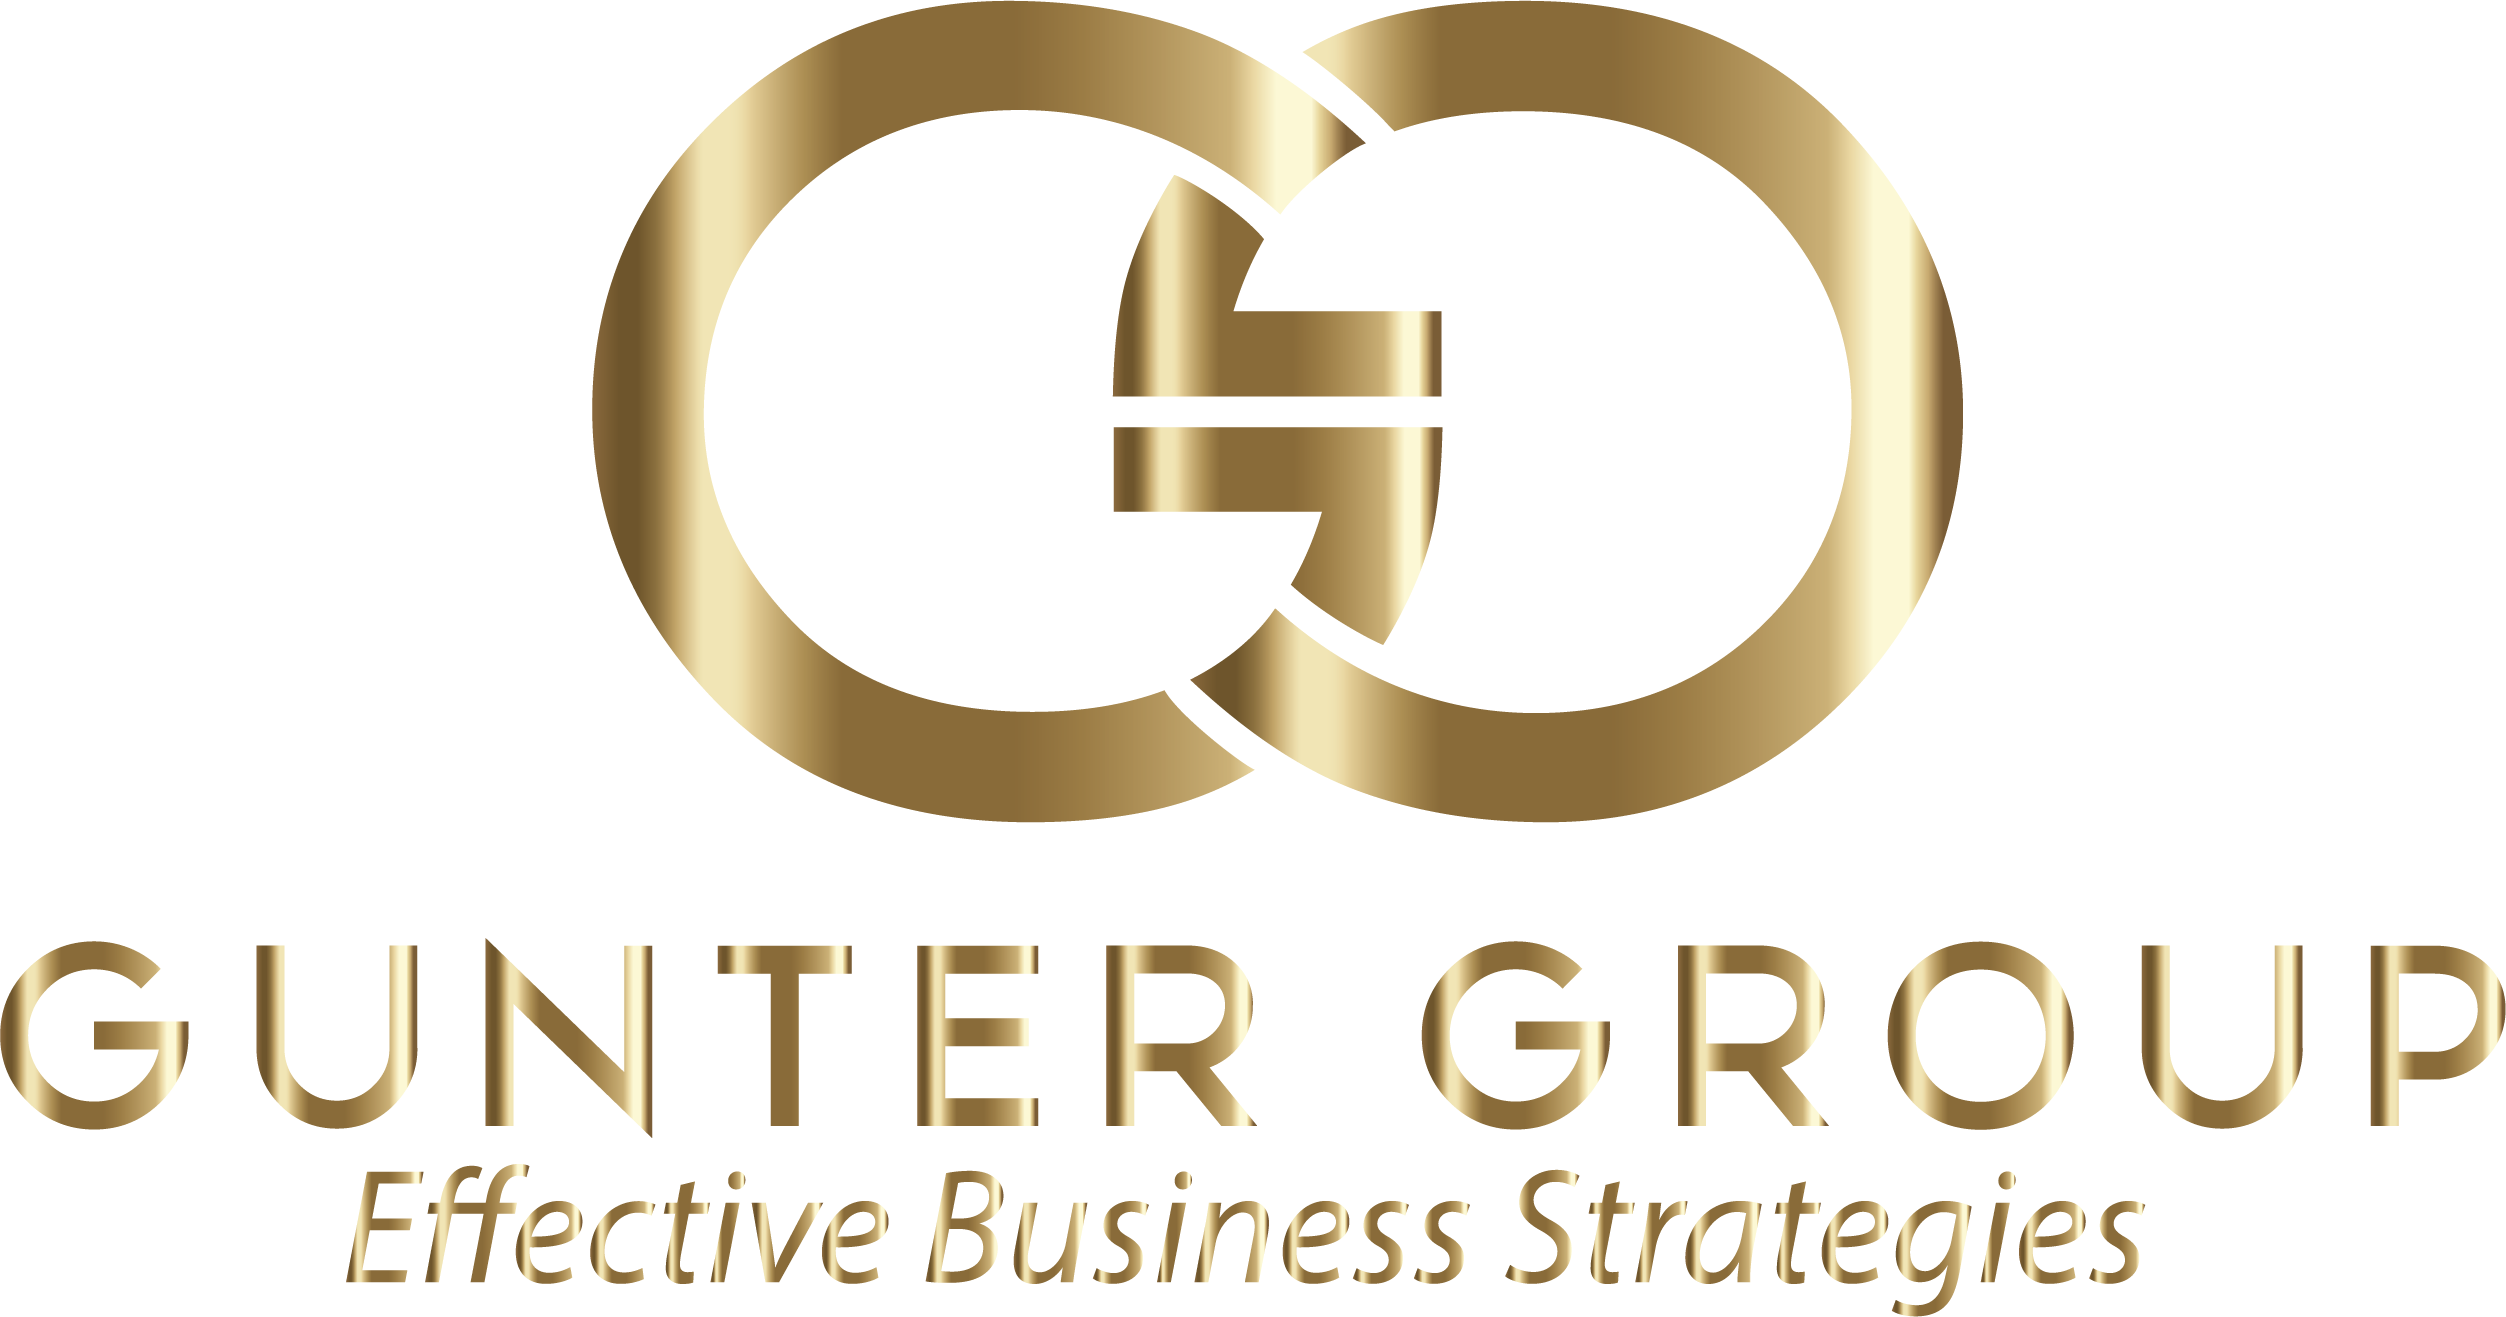 Gunter Group LLC